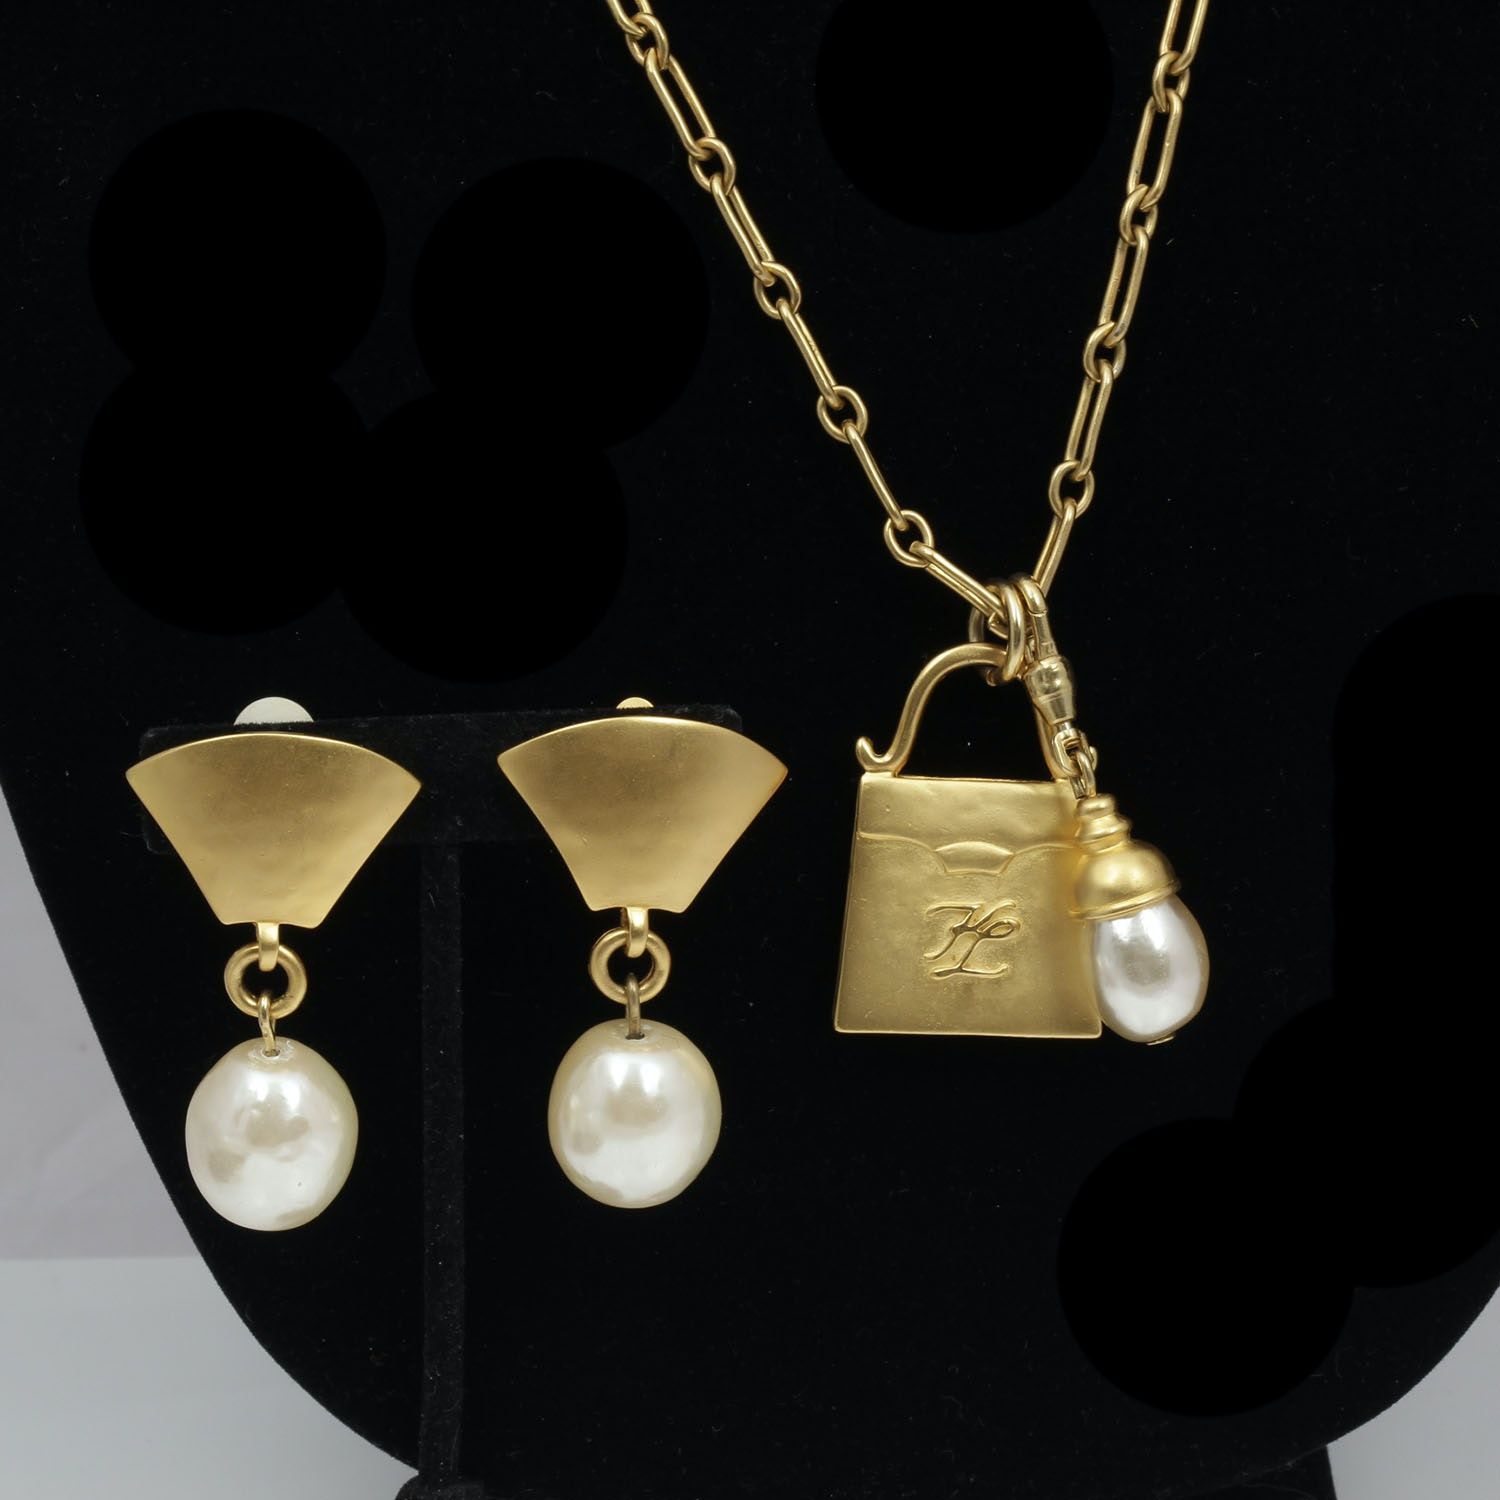 Vintage Karl Lagerfeld Necklace and Earring Set